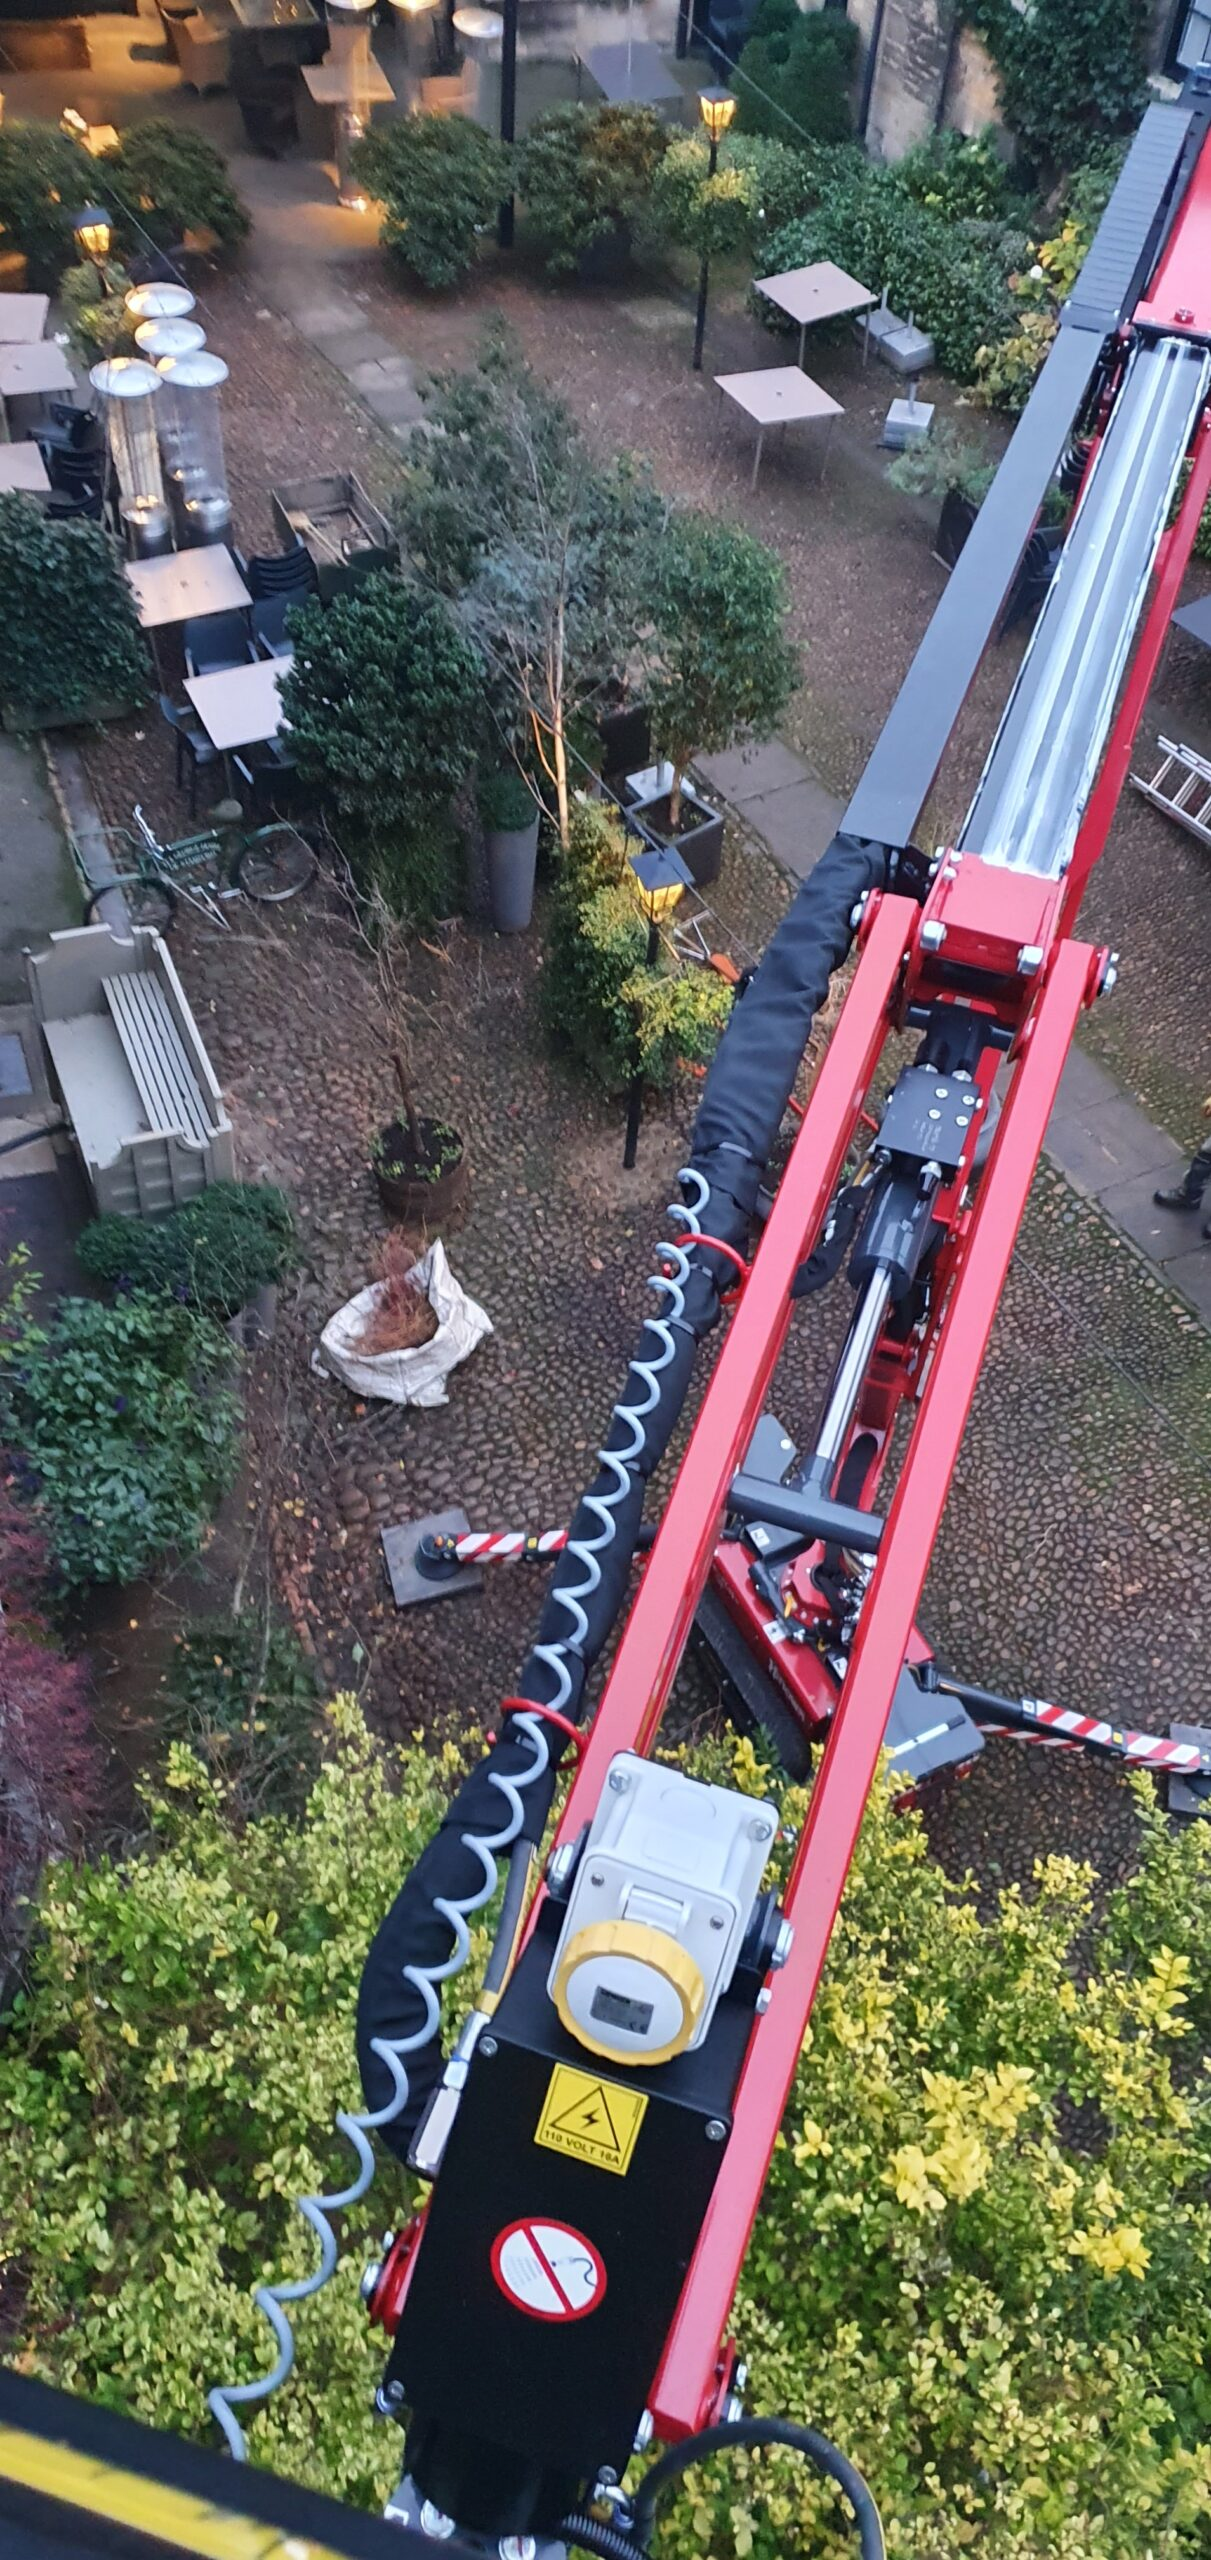 Warren Access trim ivy at The George of Stamford with the 17m Hinowa 17.75 spider lif,t part of the access platform hire fleet